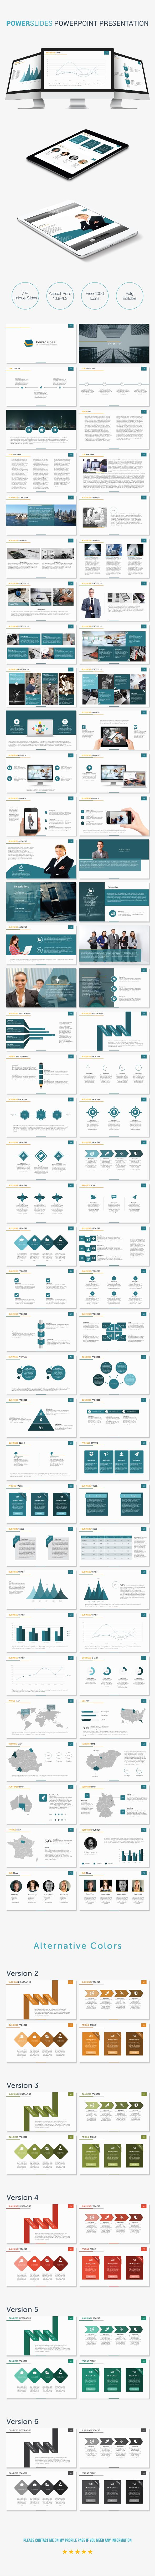 104 best presentation powerpoint images on pinterest ppt design